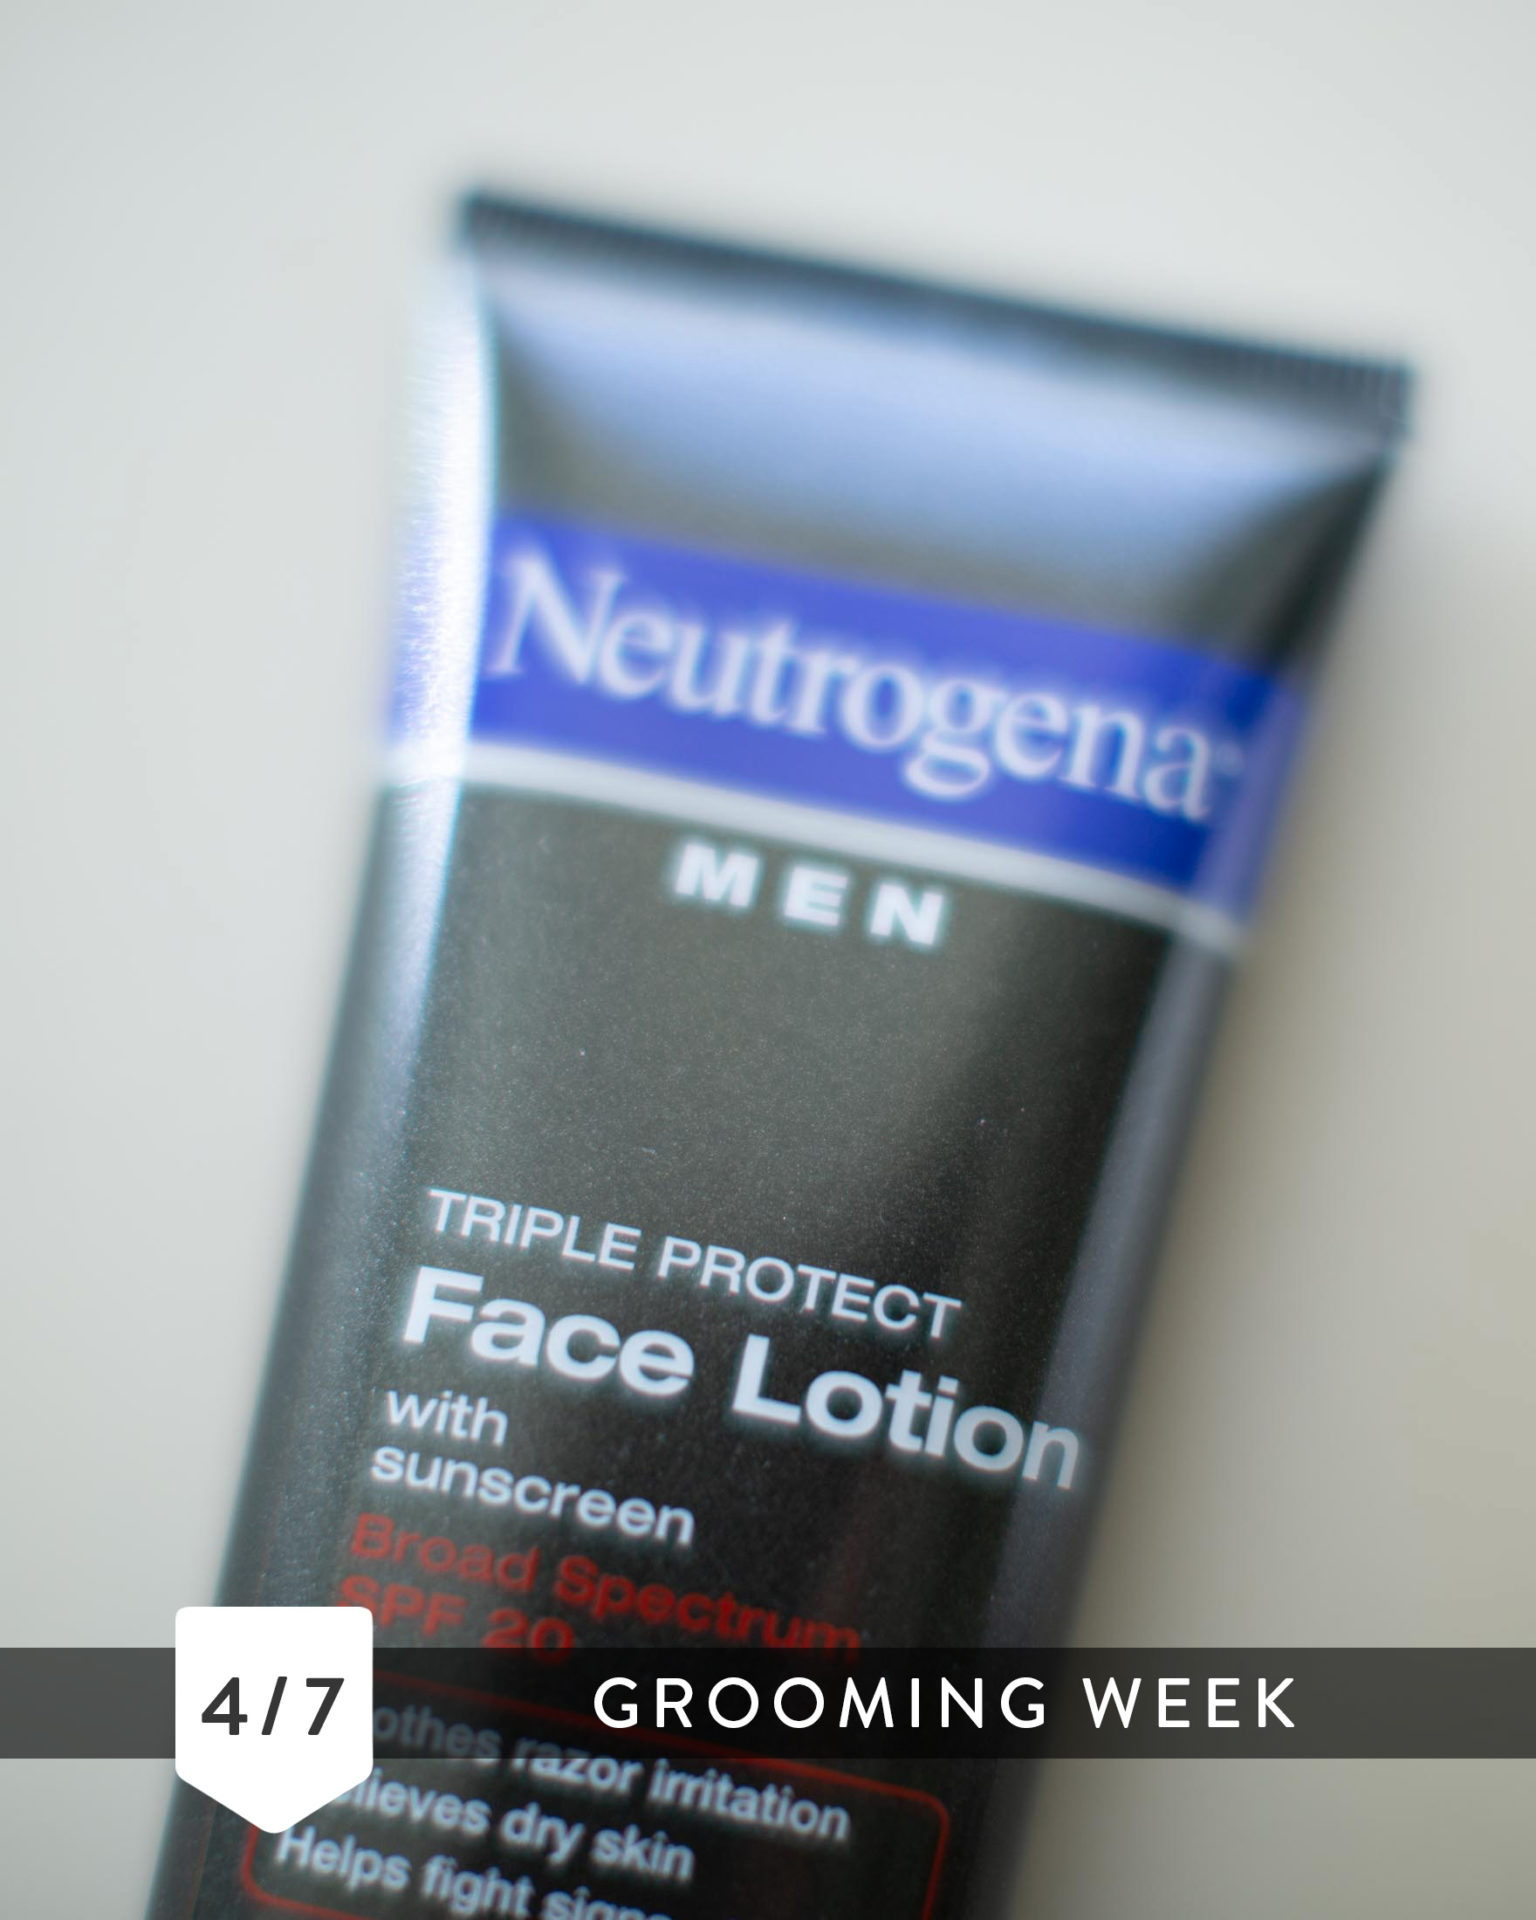 Neutrogena Triple Protext Face Lotion for Men